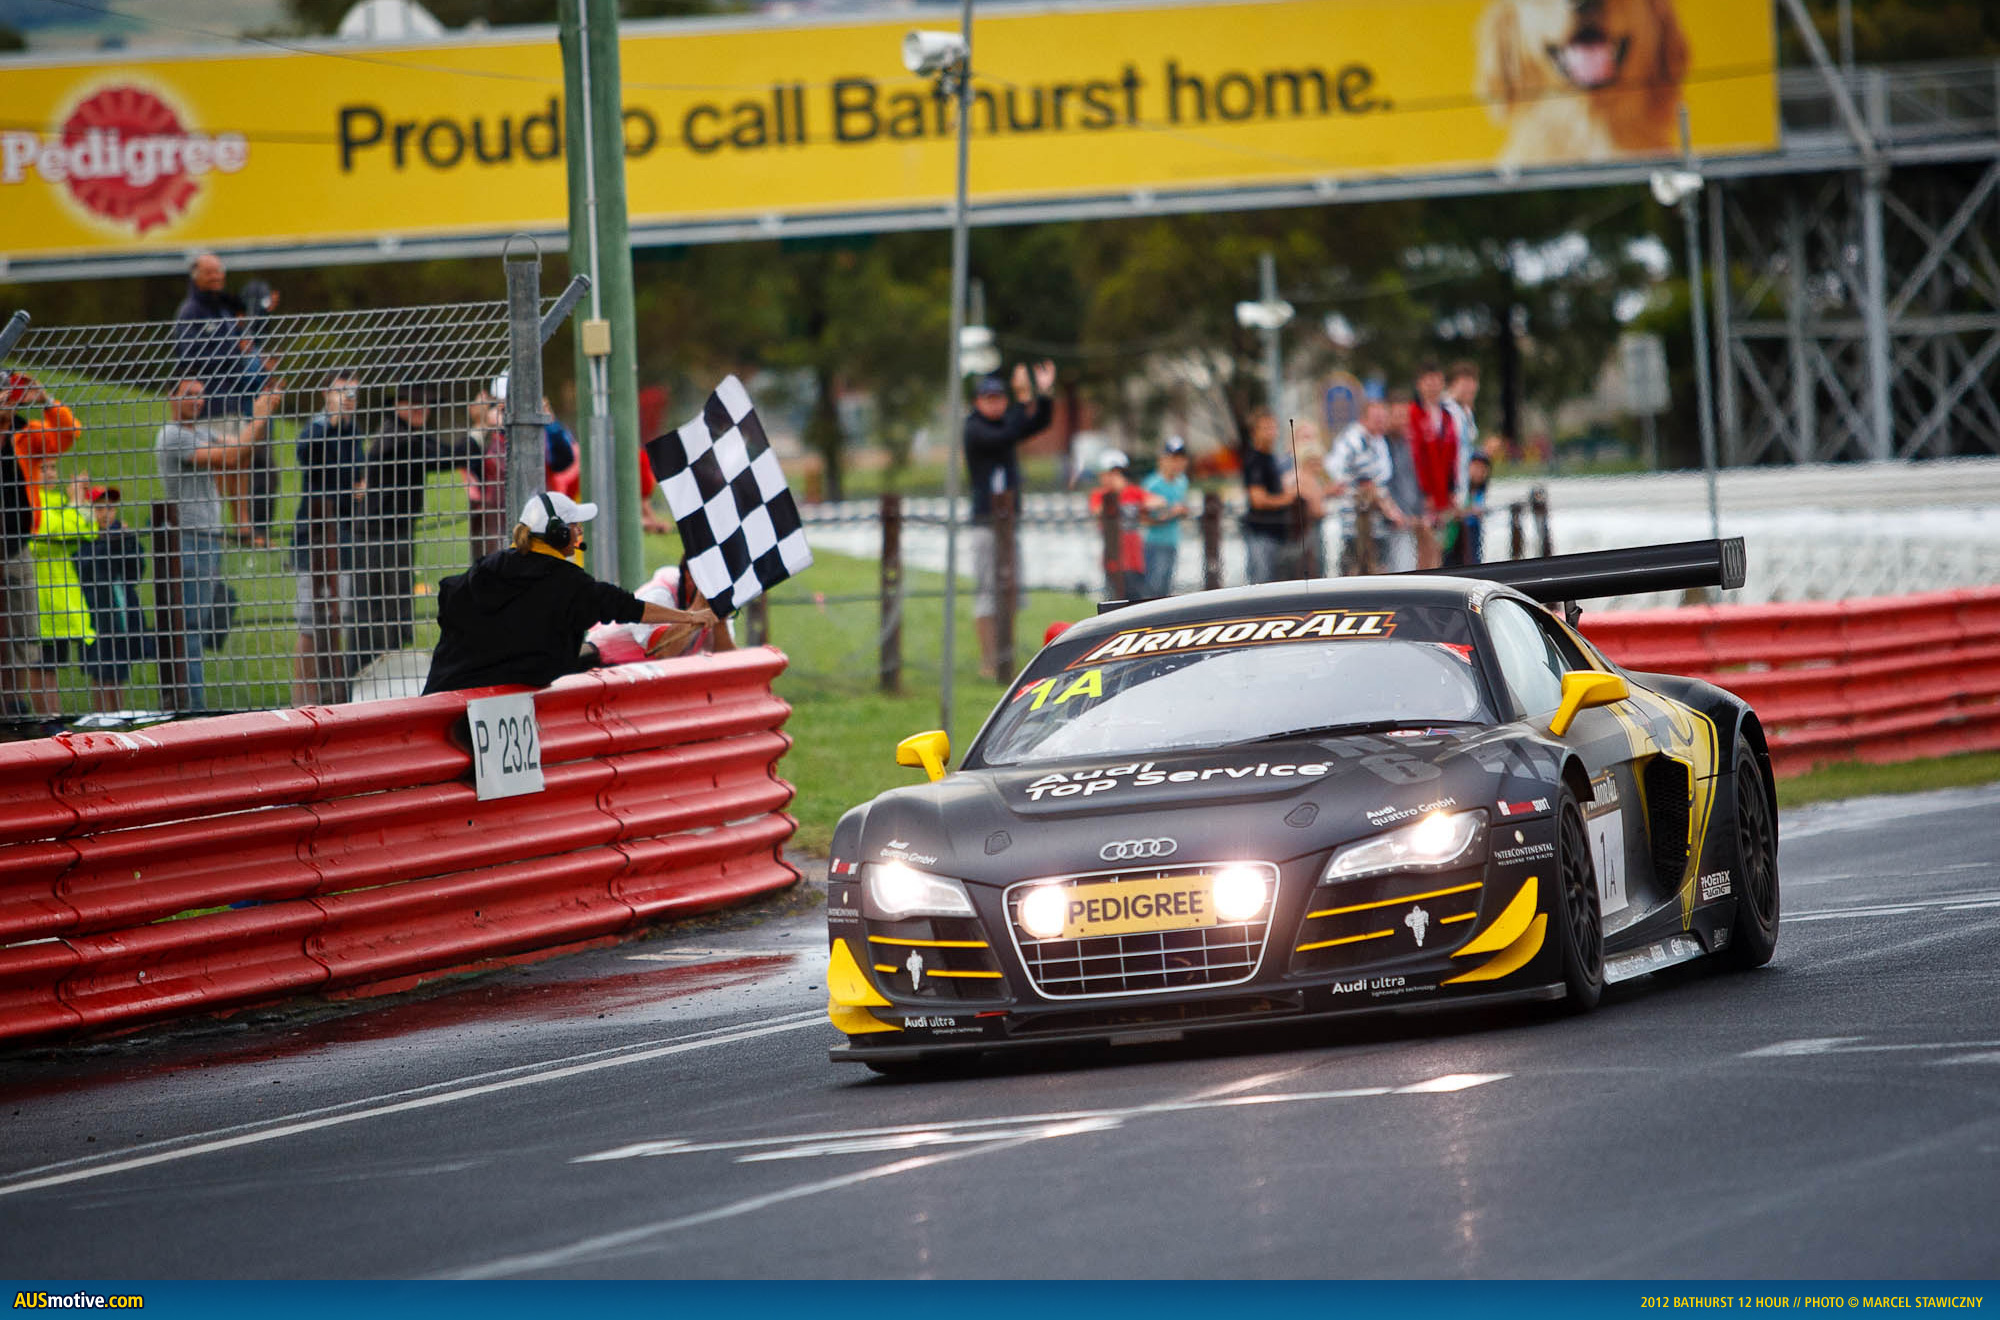 High Resolution Wallpaper | Bathurst 12 Hour Endurance 2000x1320 px